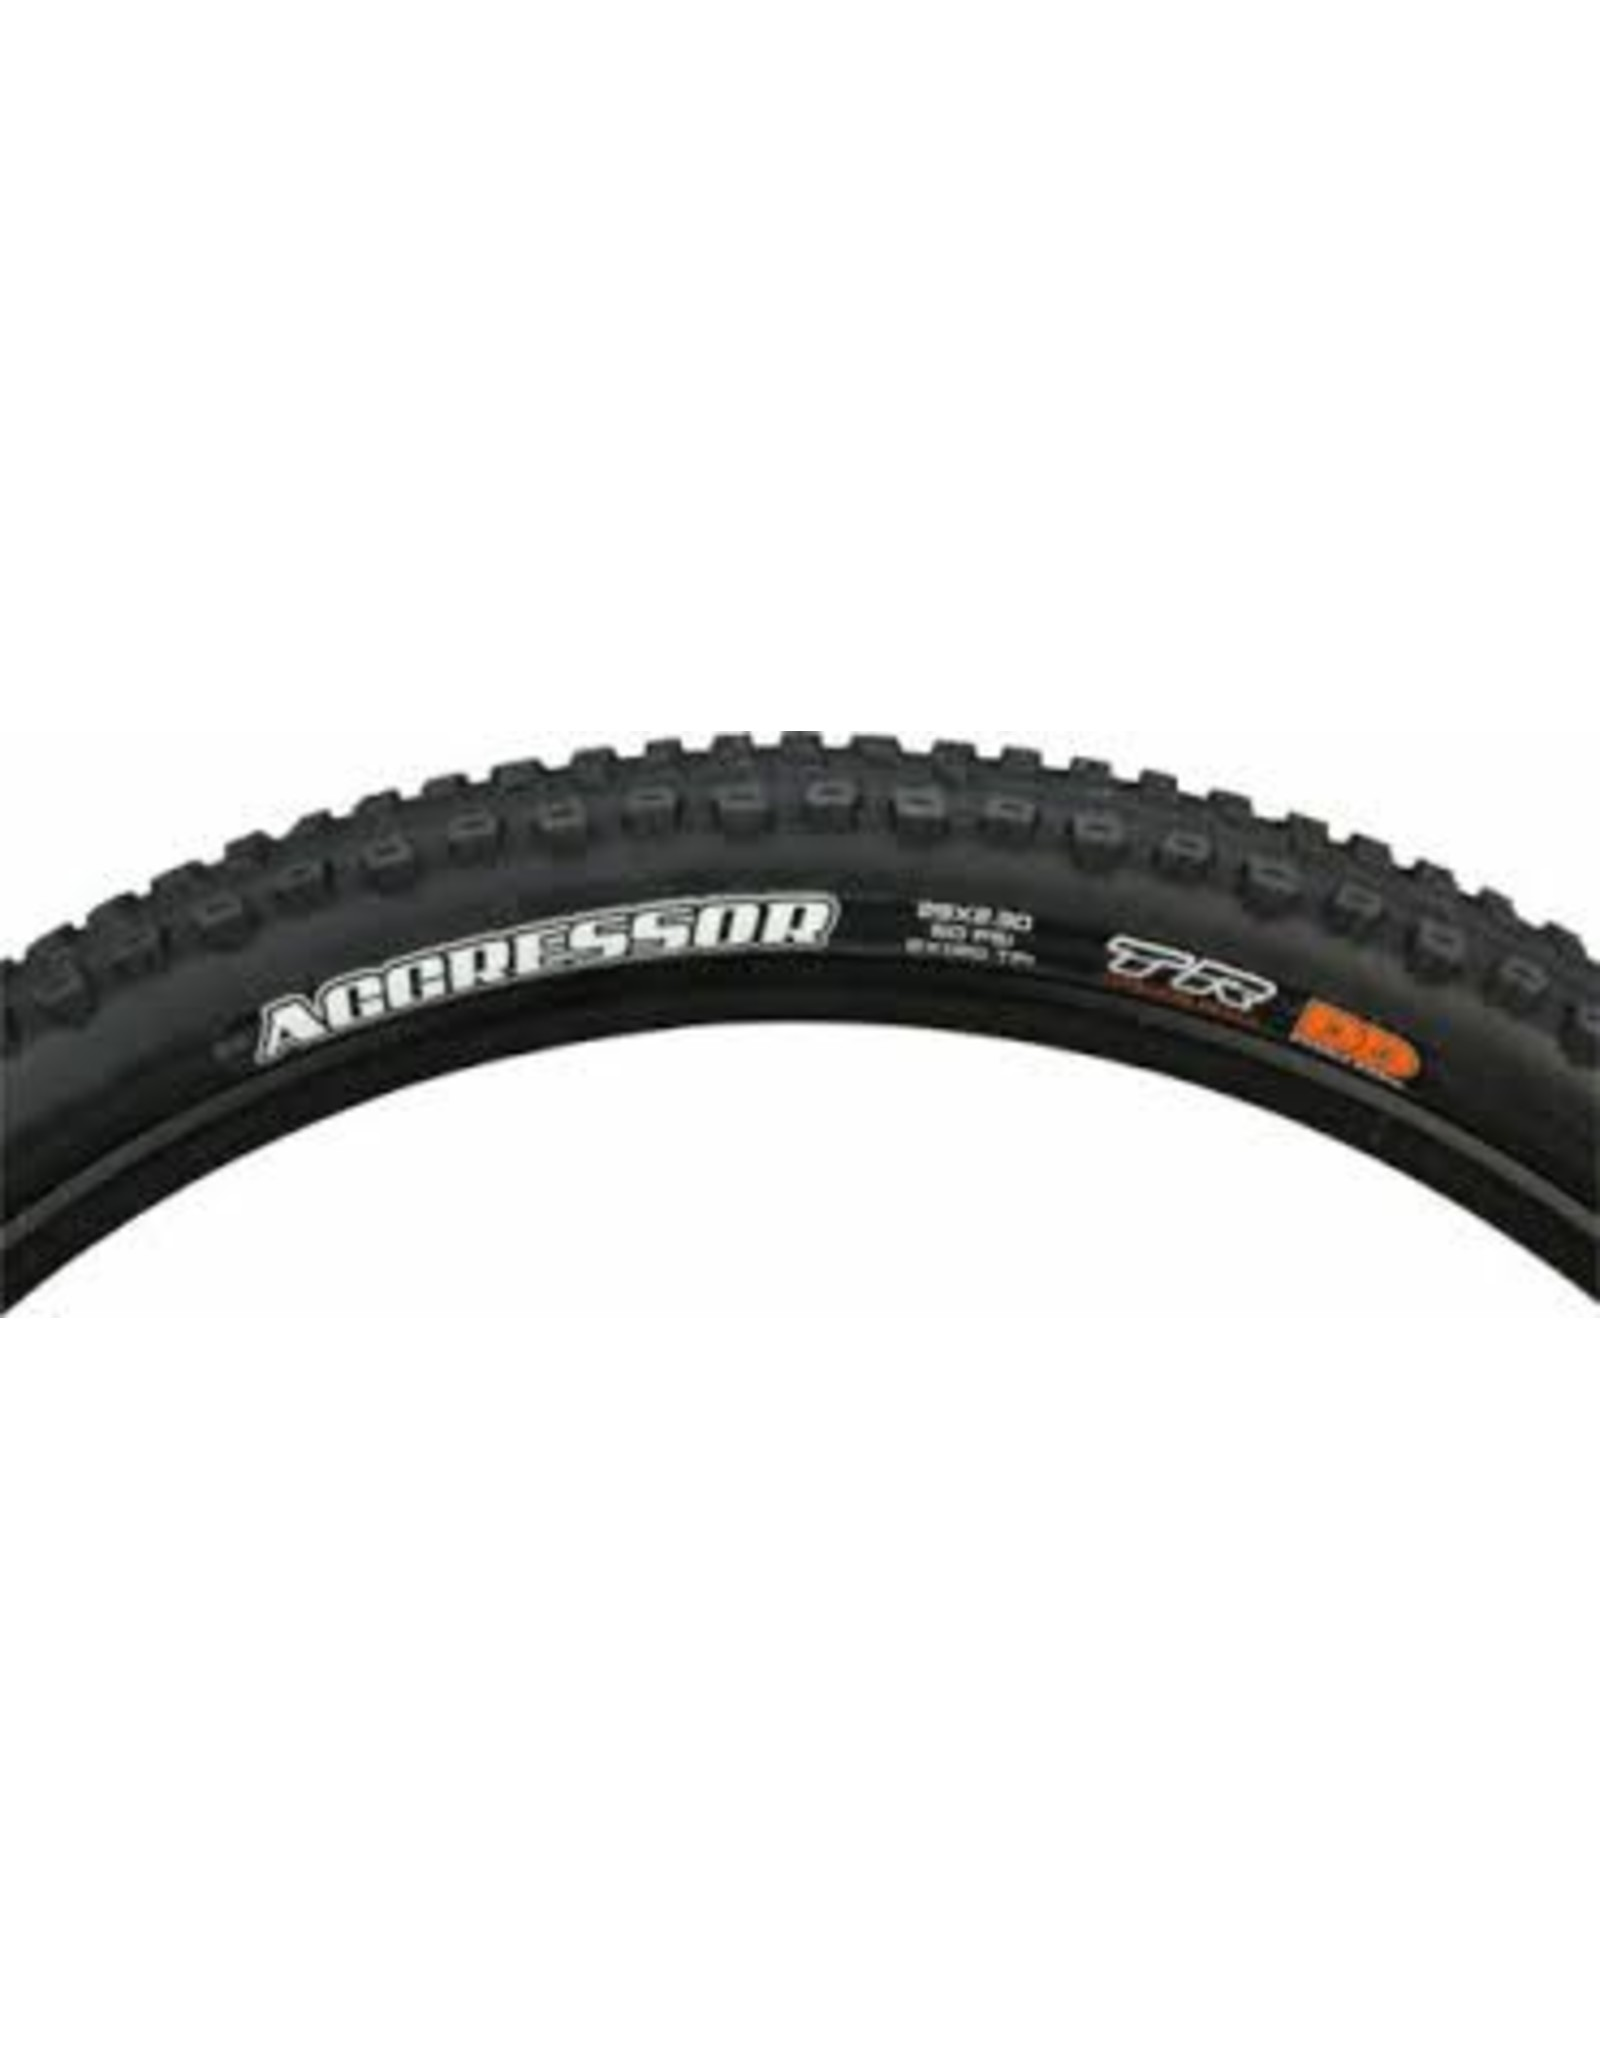 Maxxis Aggressor Tire - 29 x 2.3, Tubeless, Folding, Black, Dual, DD